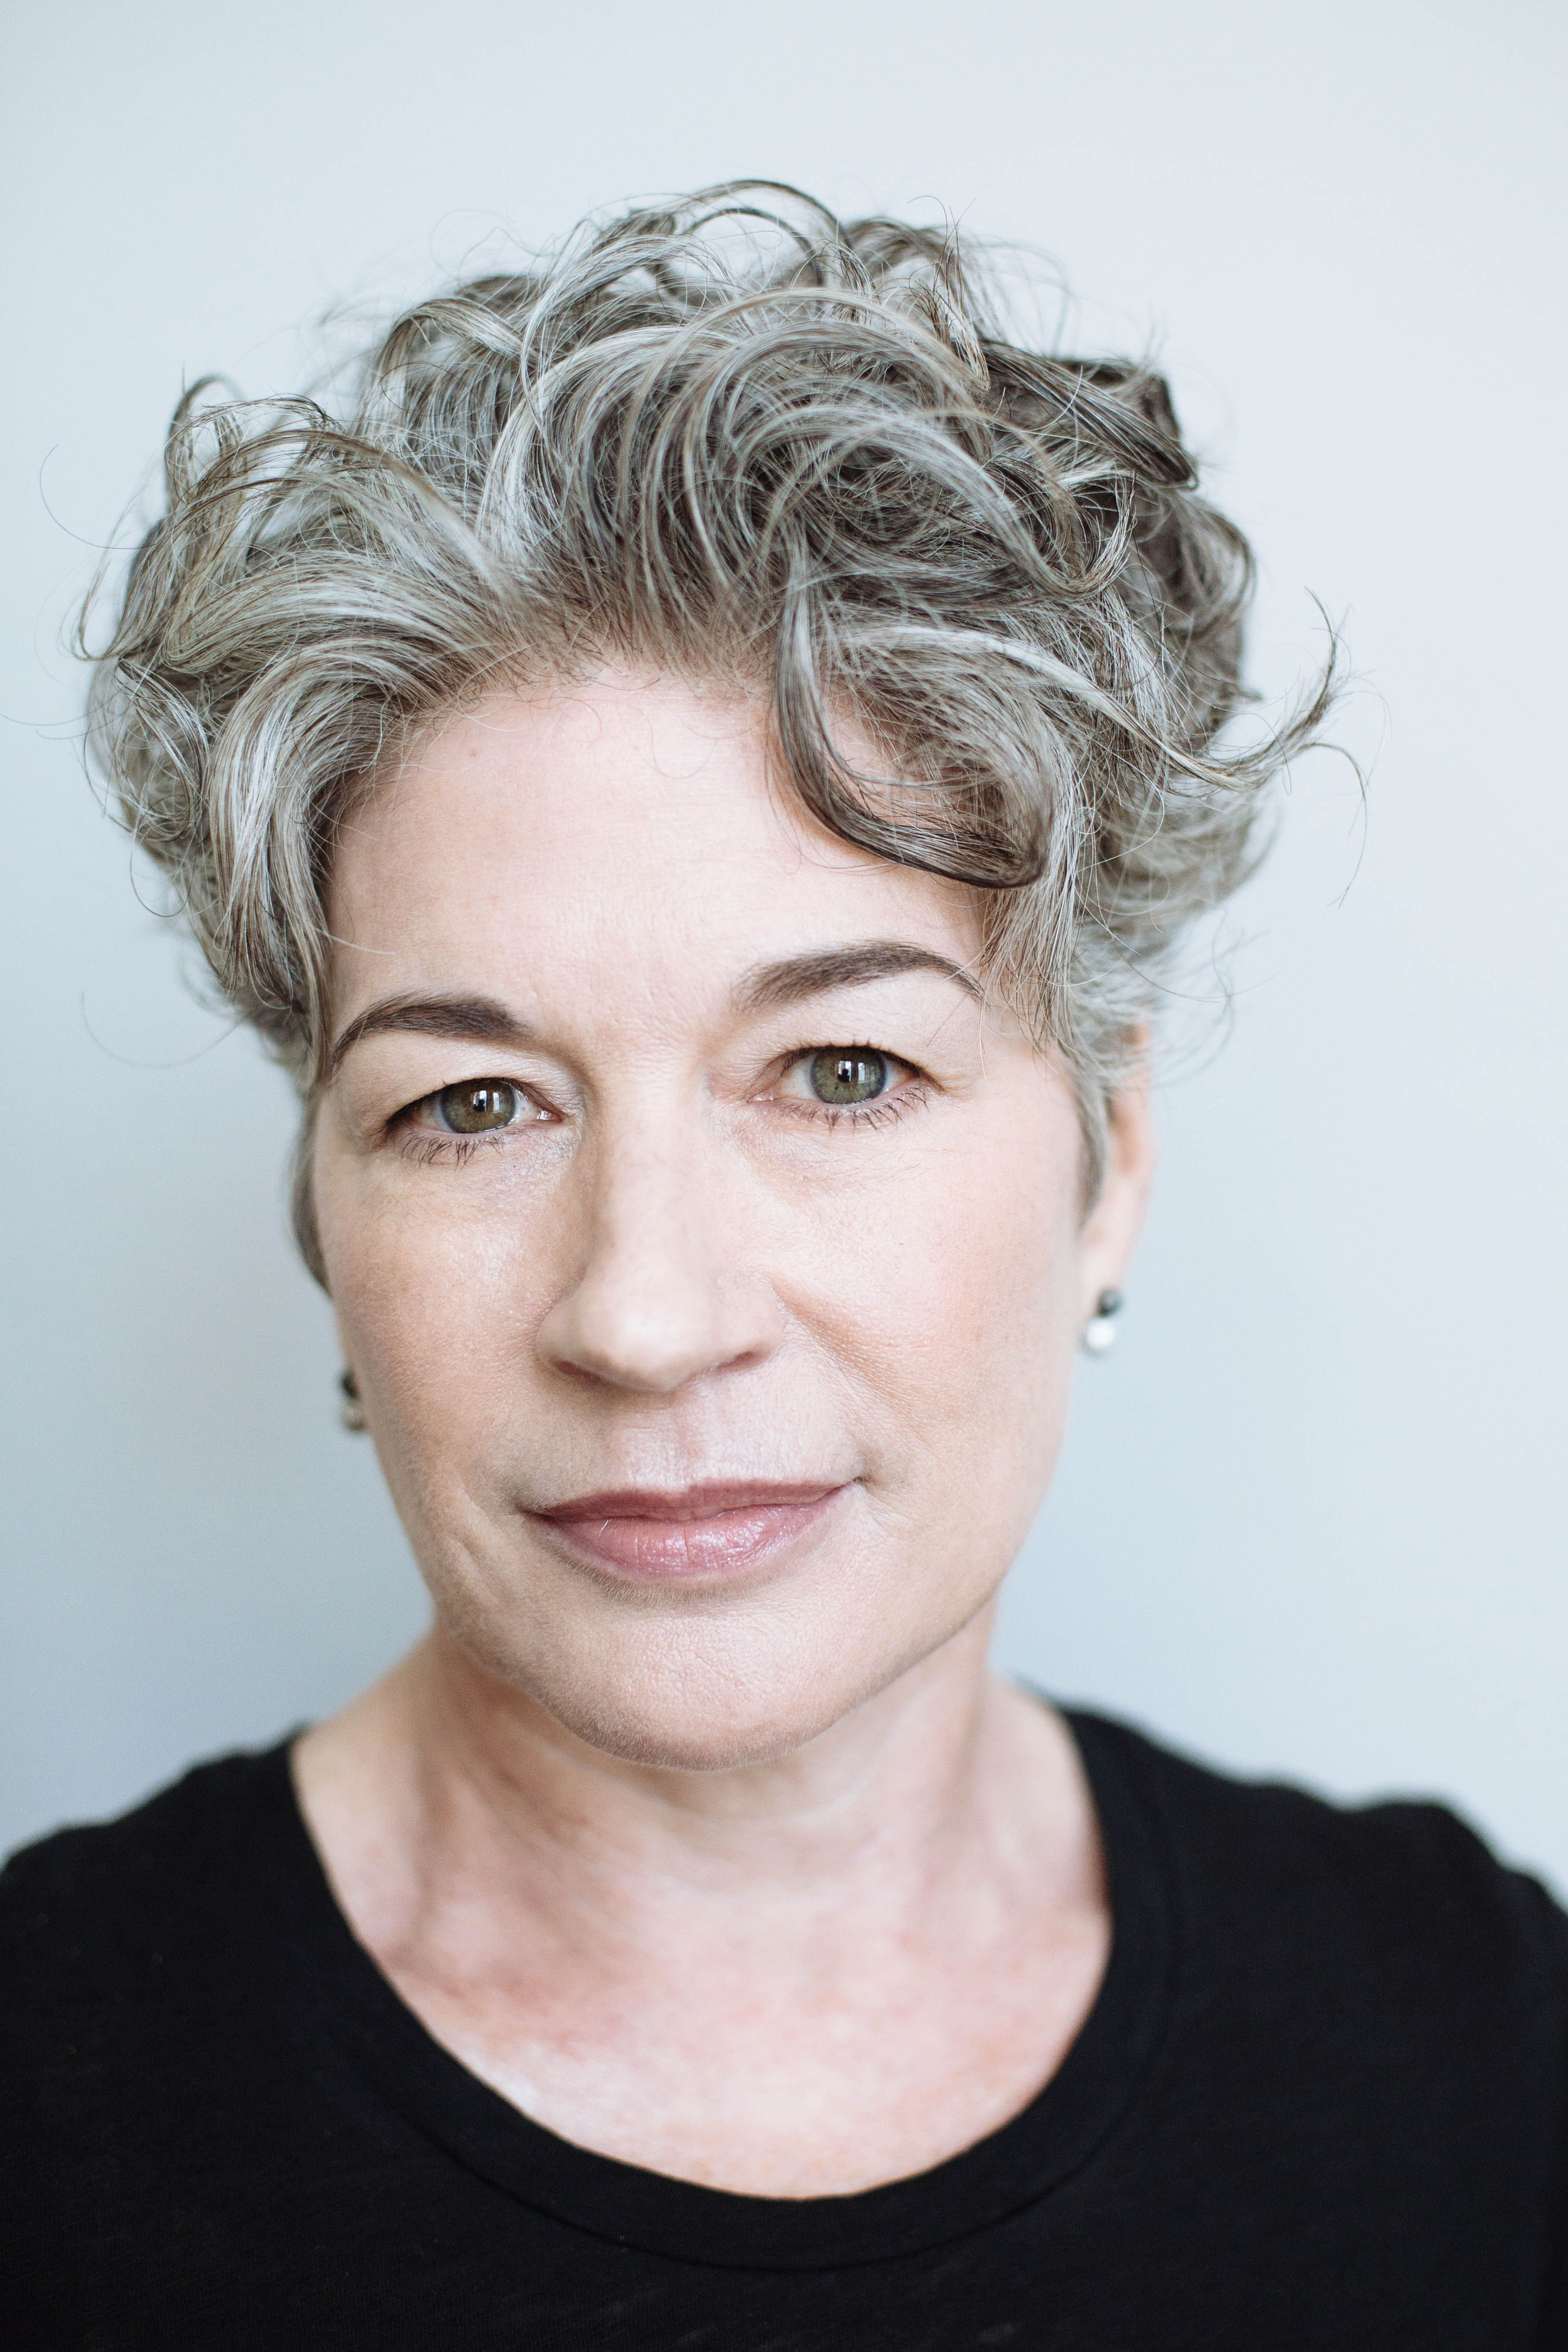 Curly Silver Hair Silver Pinterest Silver Hair Curly And